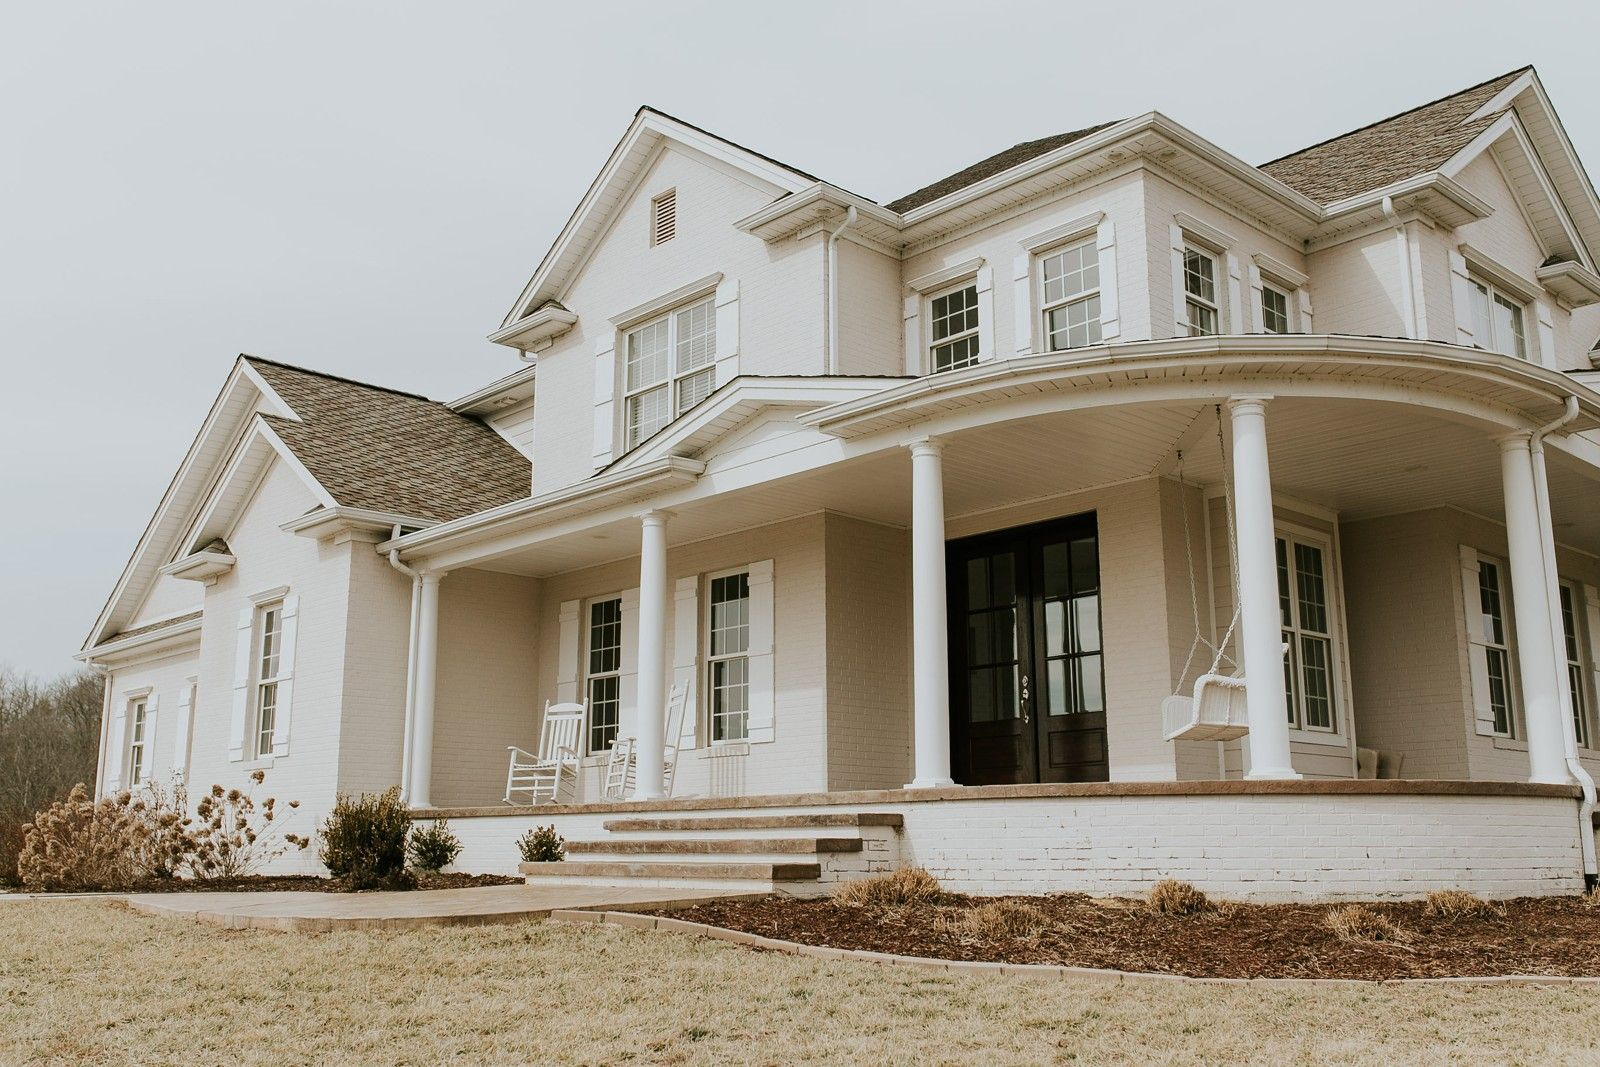 Four bedrooms and a magnificent wraparound porch